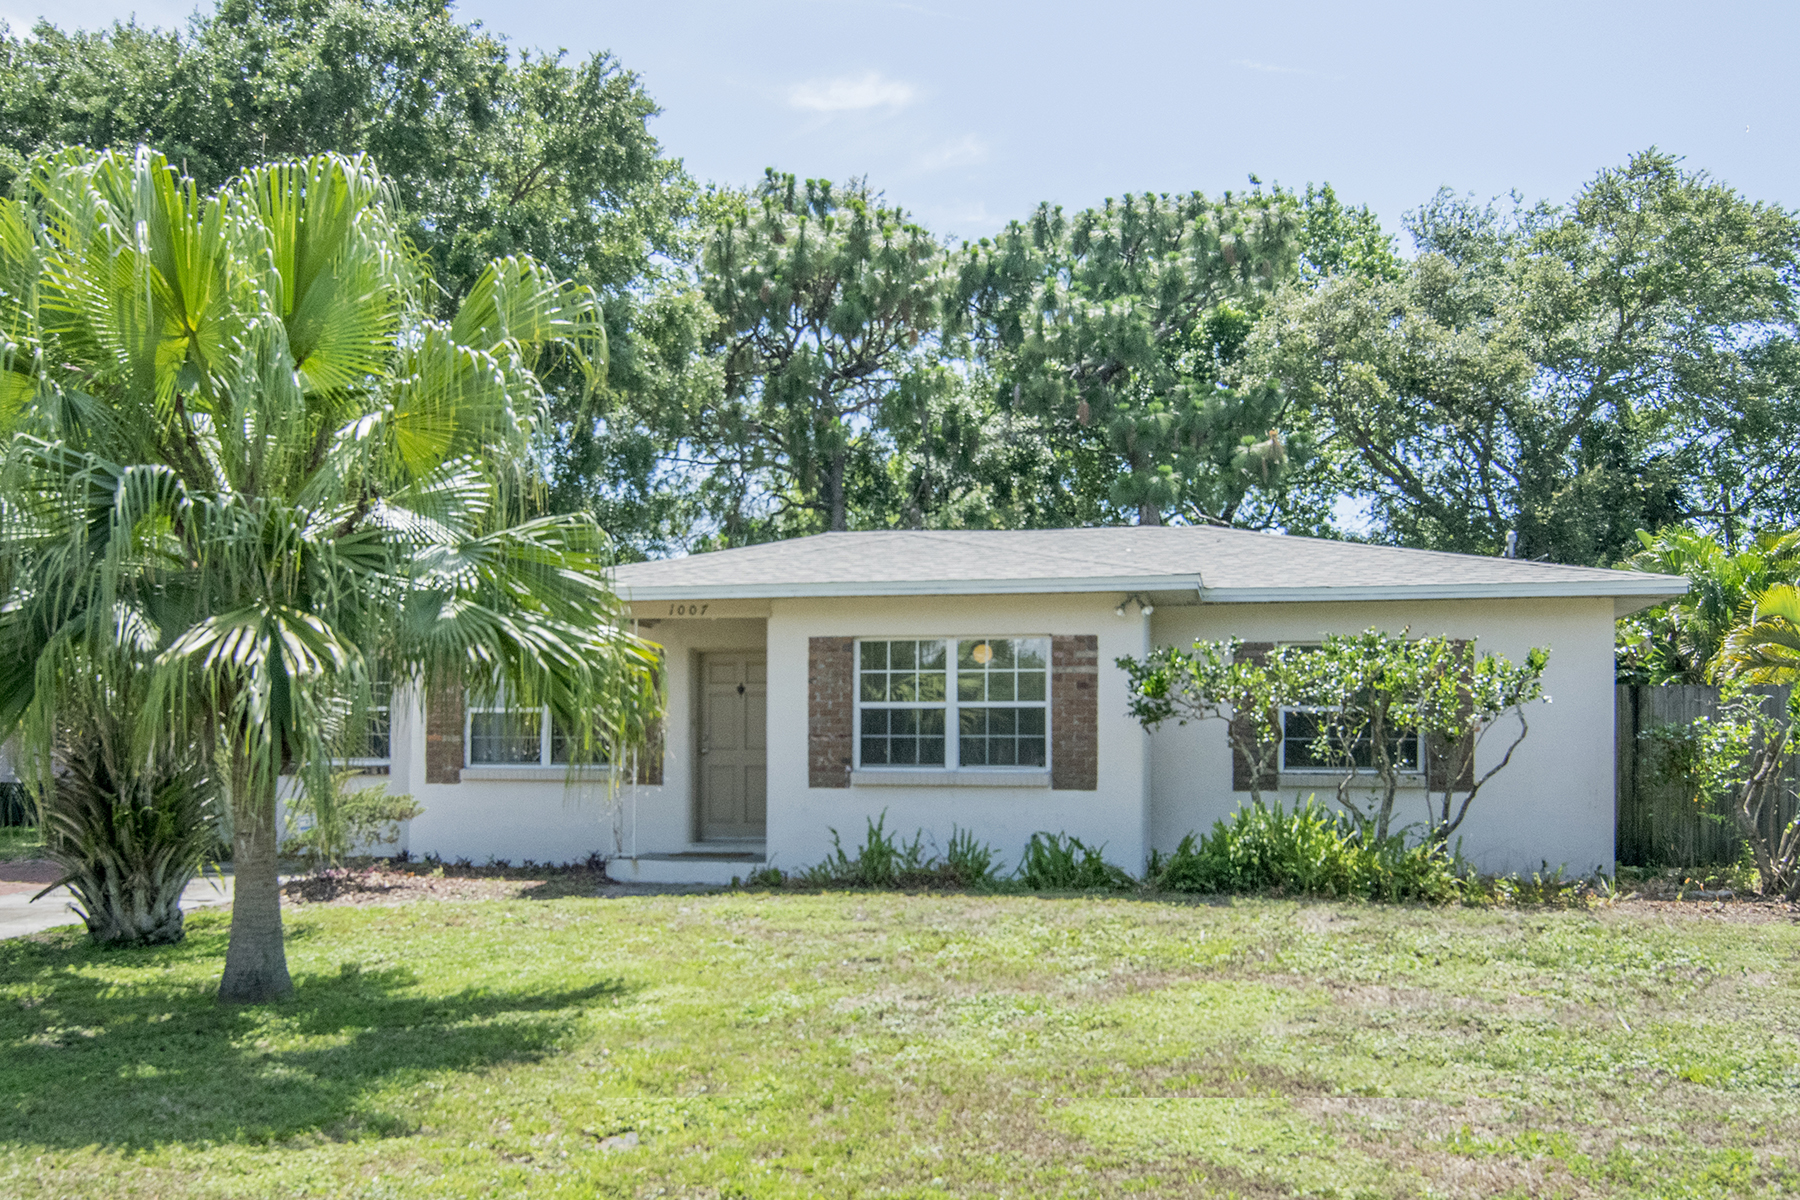 Single Family Home for Sale at SOUTH TAMPA 1007 S Clark Ave Tampa, Florida, 33629 United States